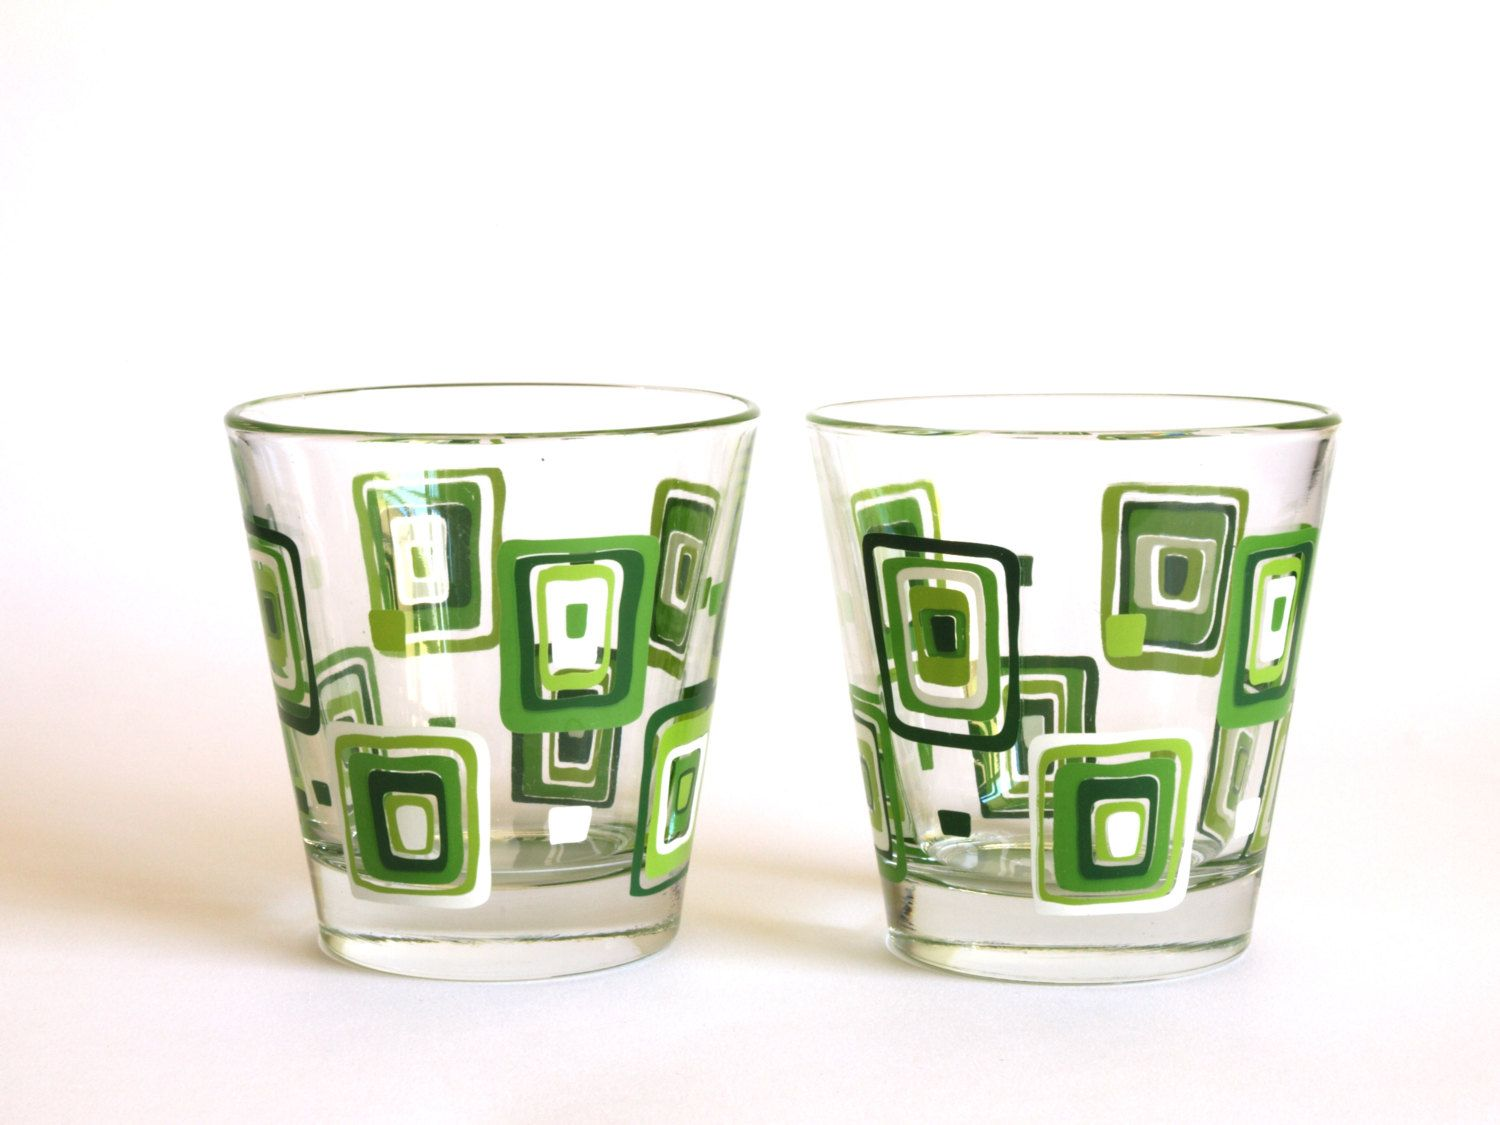 ed7b822625b Vintage Mod Mid Century Green   White Rectangle Pattern Low Ball Glasses - Italian  Glasses Set of Two - Made by Cerve (25.00 AUD) by FunkyKoala